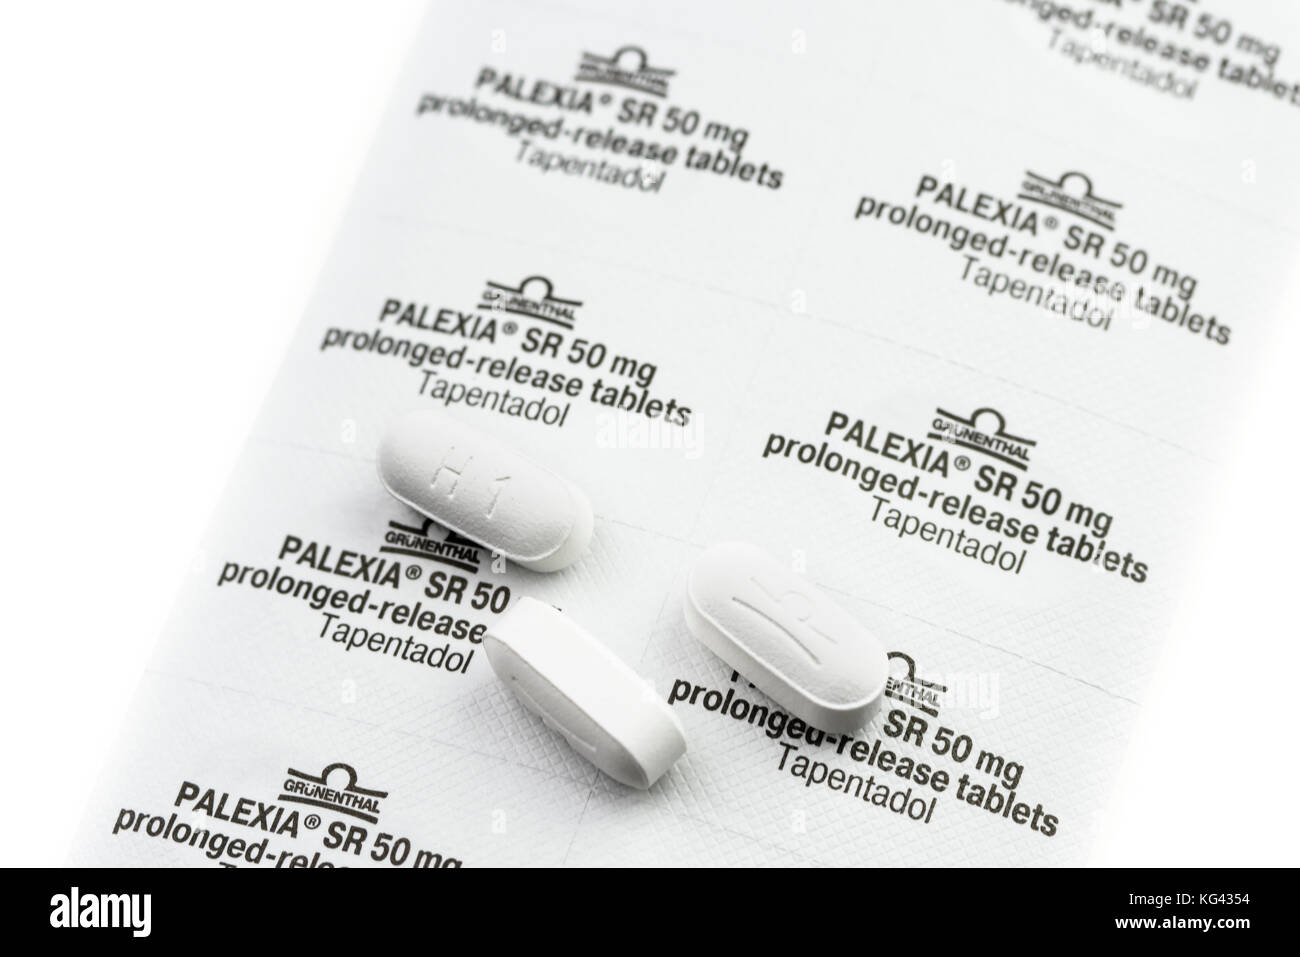 Palexia (Tapentadol) comprimés et blister. Une base aux opiacés pain killer. Photo Stock